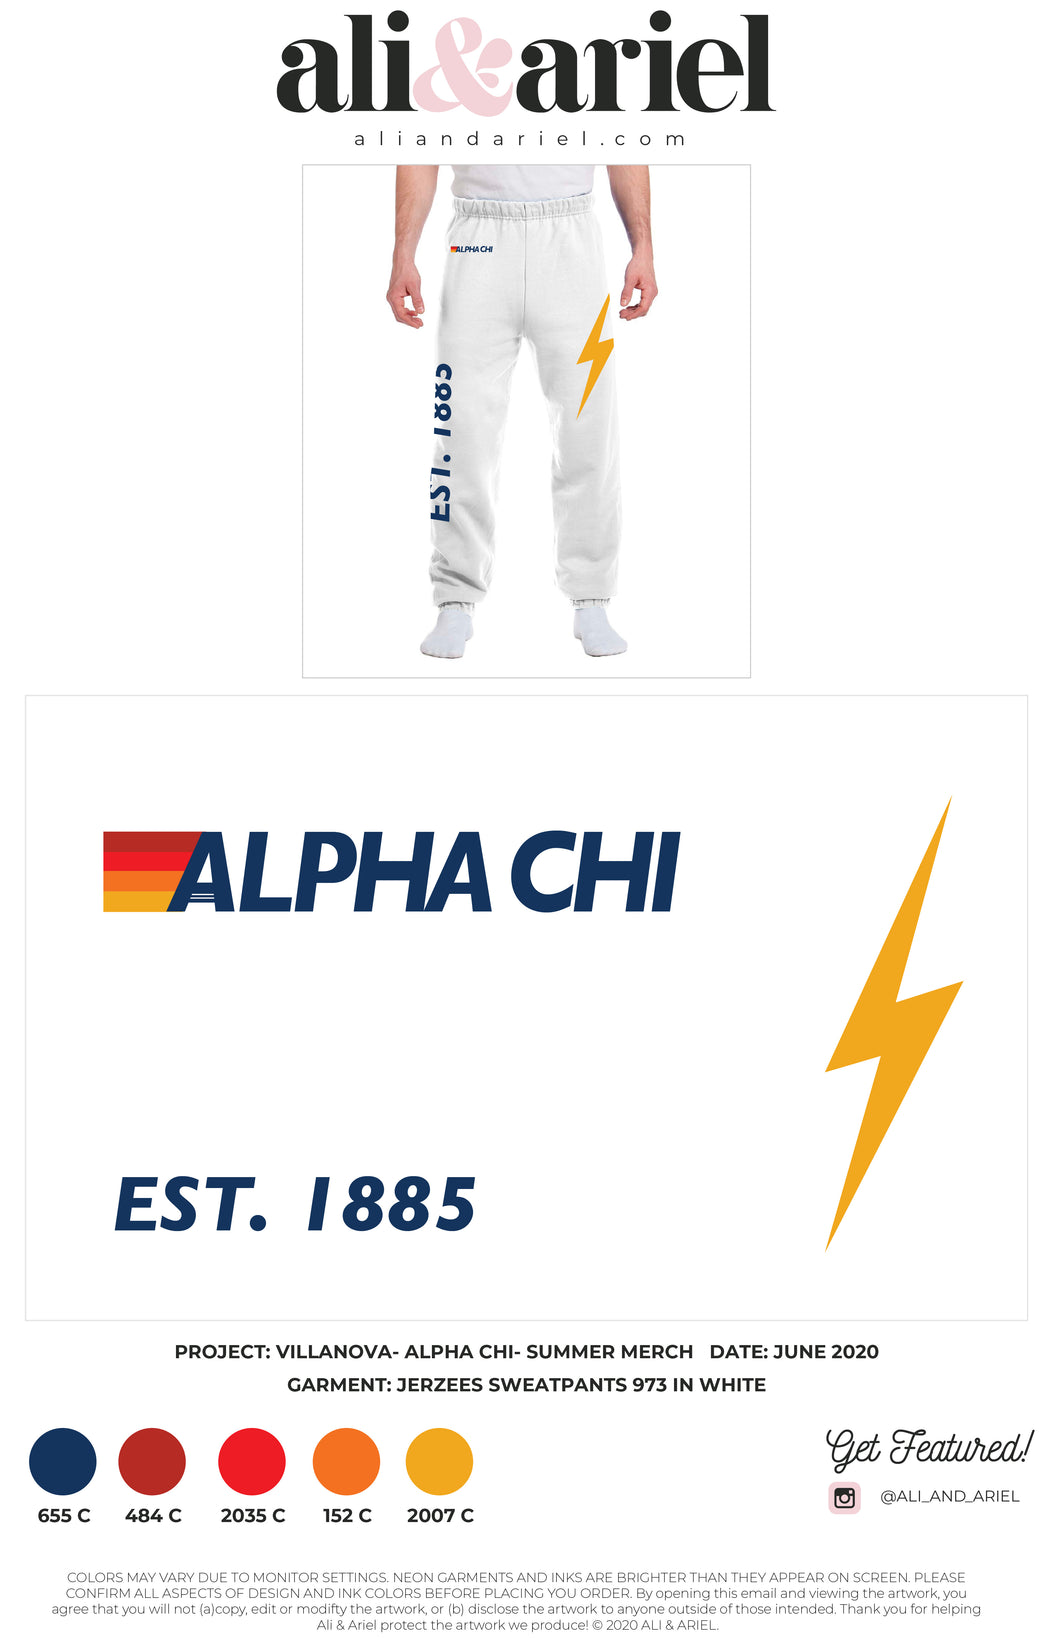 SWEATPANTS. Villanova- Alpha Chi- Summer Merch